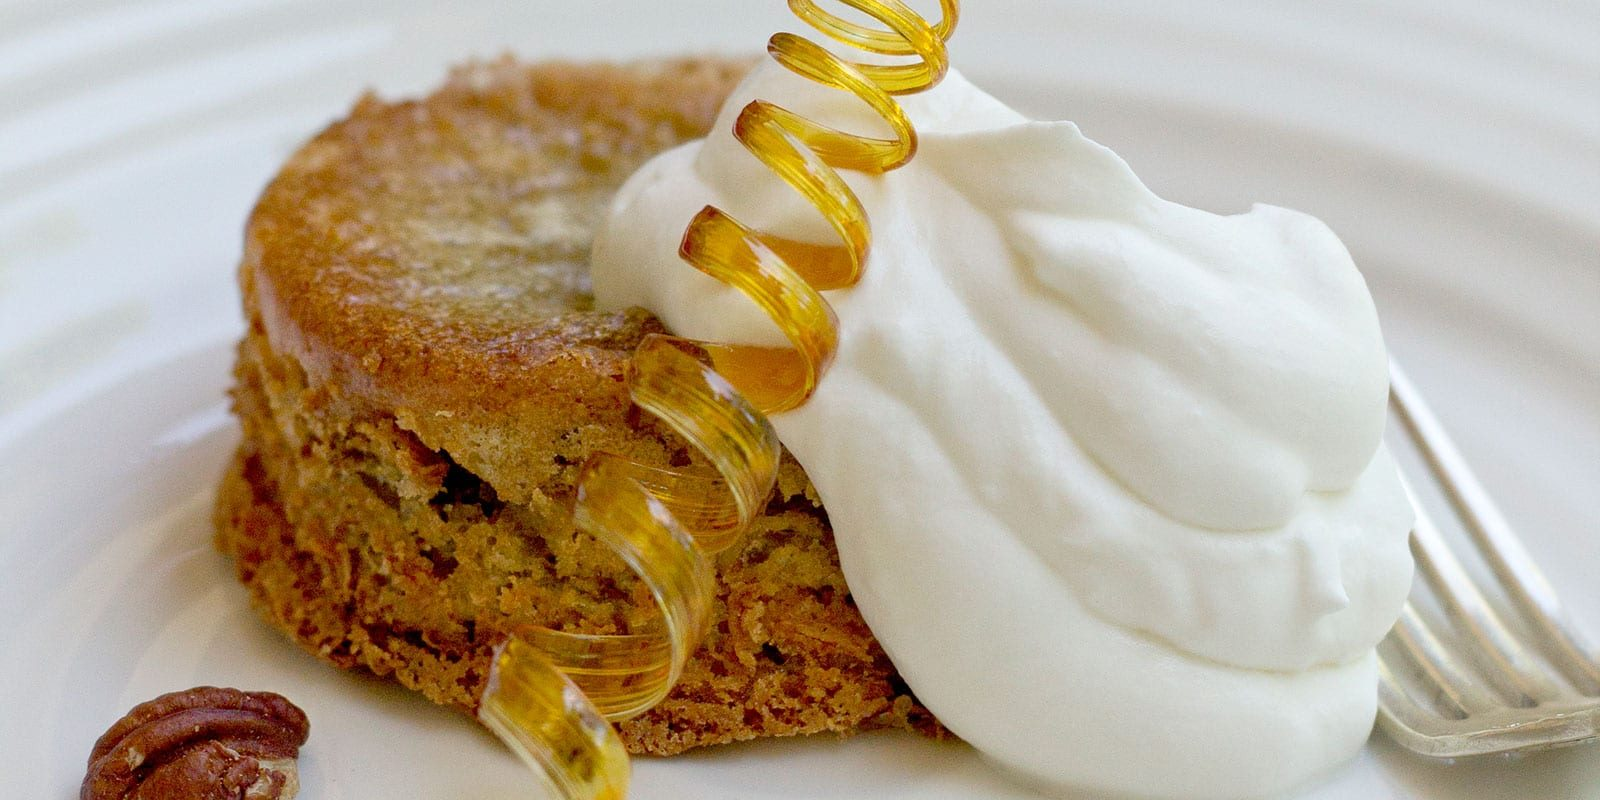 Huguenot Torte by Any Other Name is Just as Sweet